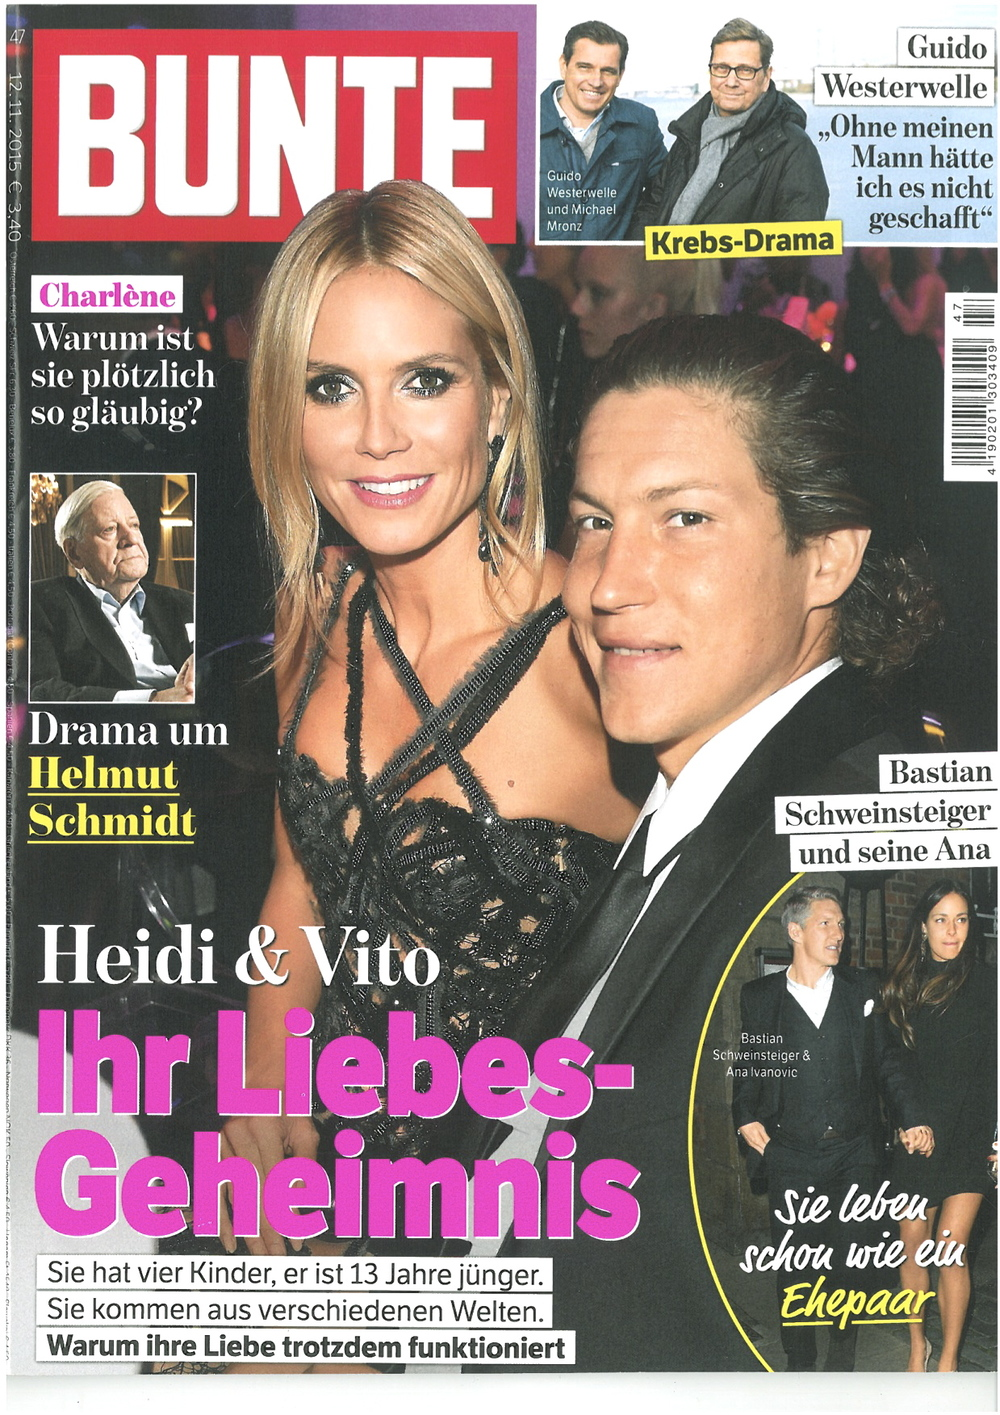 fashion celebrity bunte magazine eambrandis jewellery jewelry feature report young designer vienna